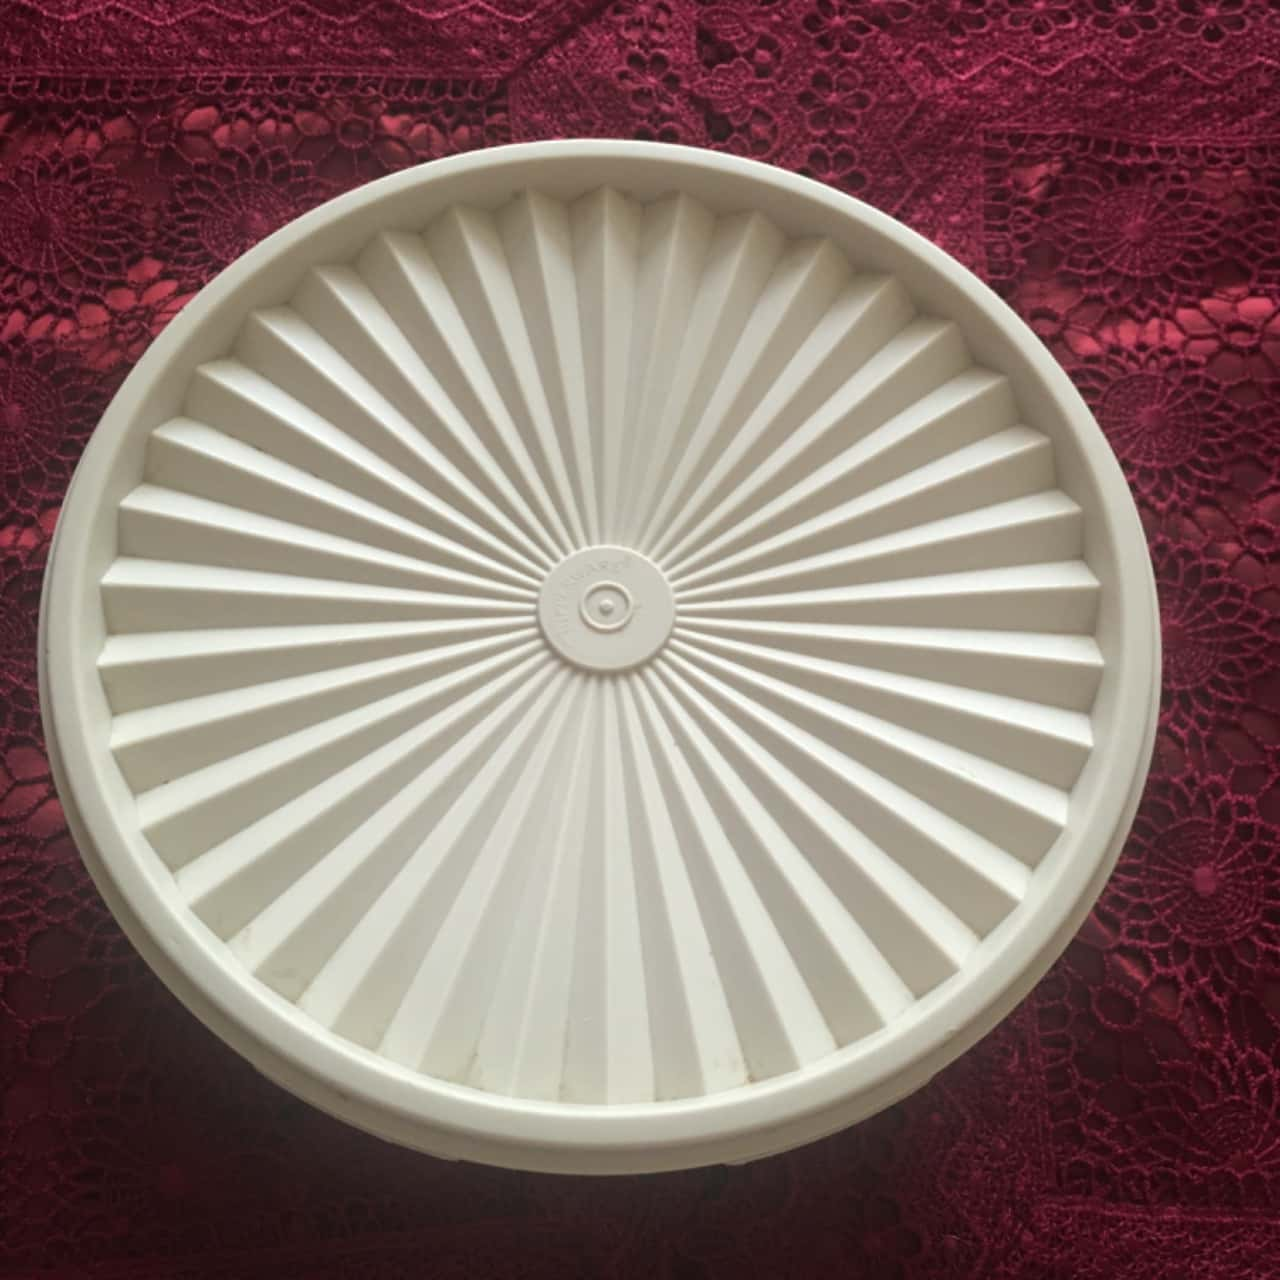 Vintage Tupperware Round Storage Container with Fan Lid, Ivory